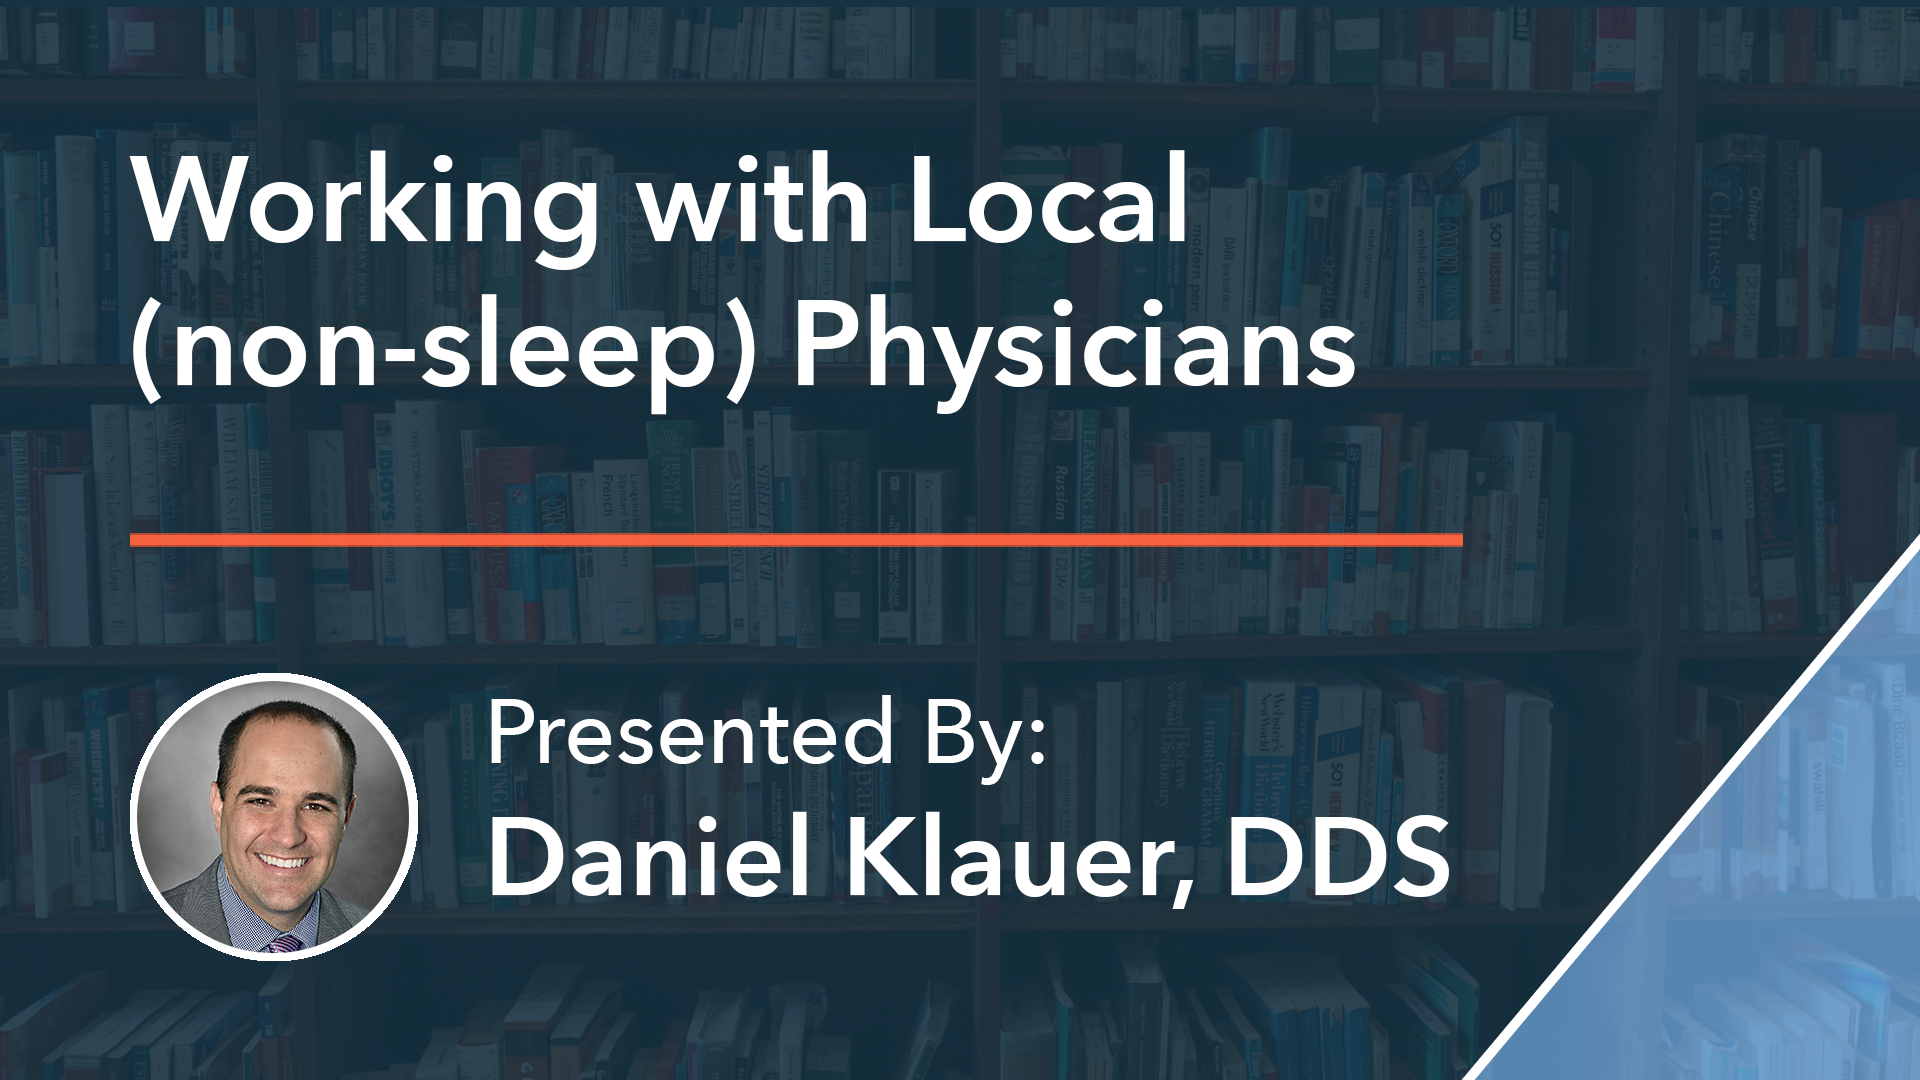 Working with Local (non-sleep) Physicians Dr Daniel Klauer